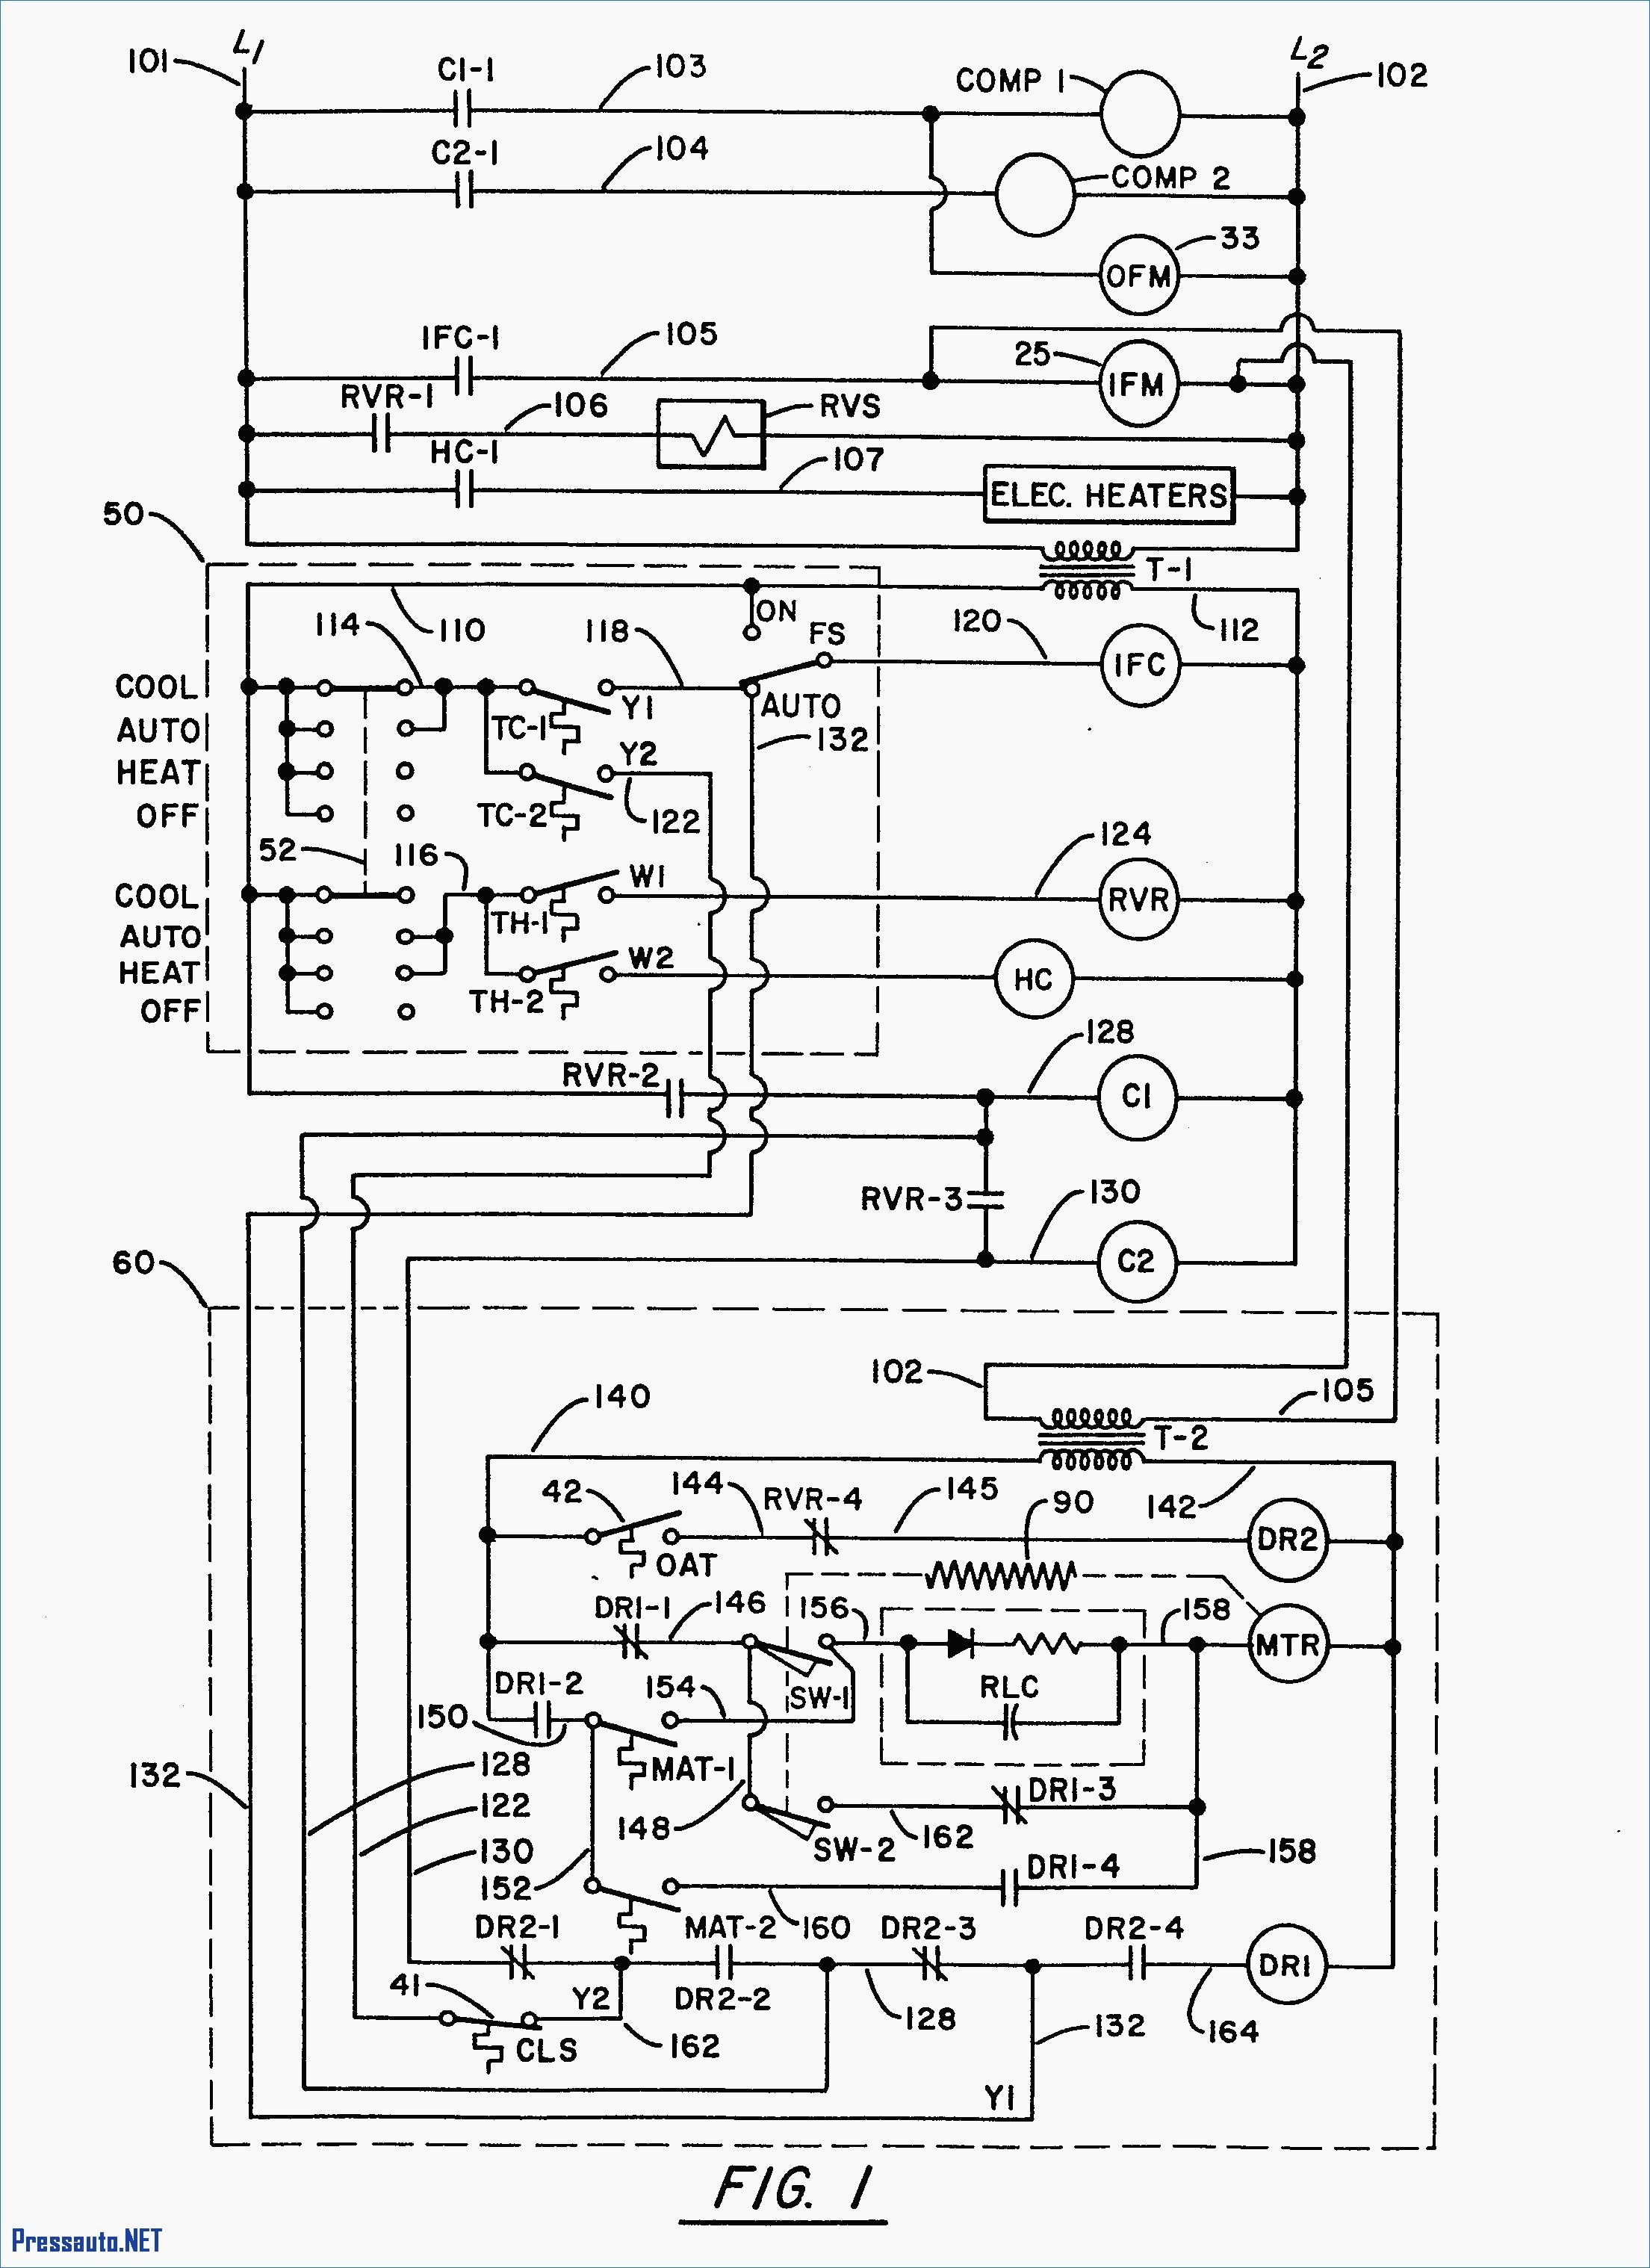 wiring model trane diagram wphd0197